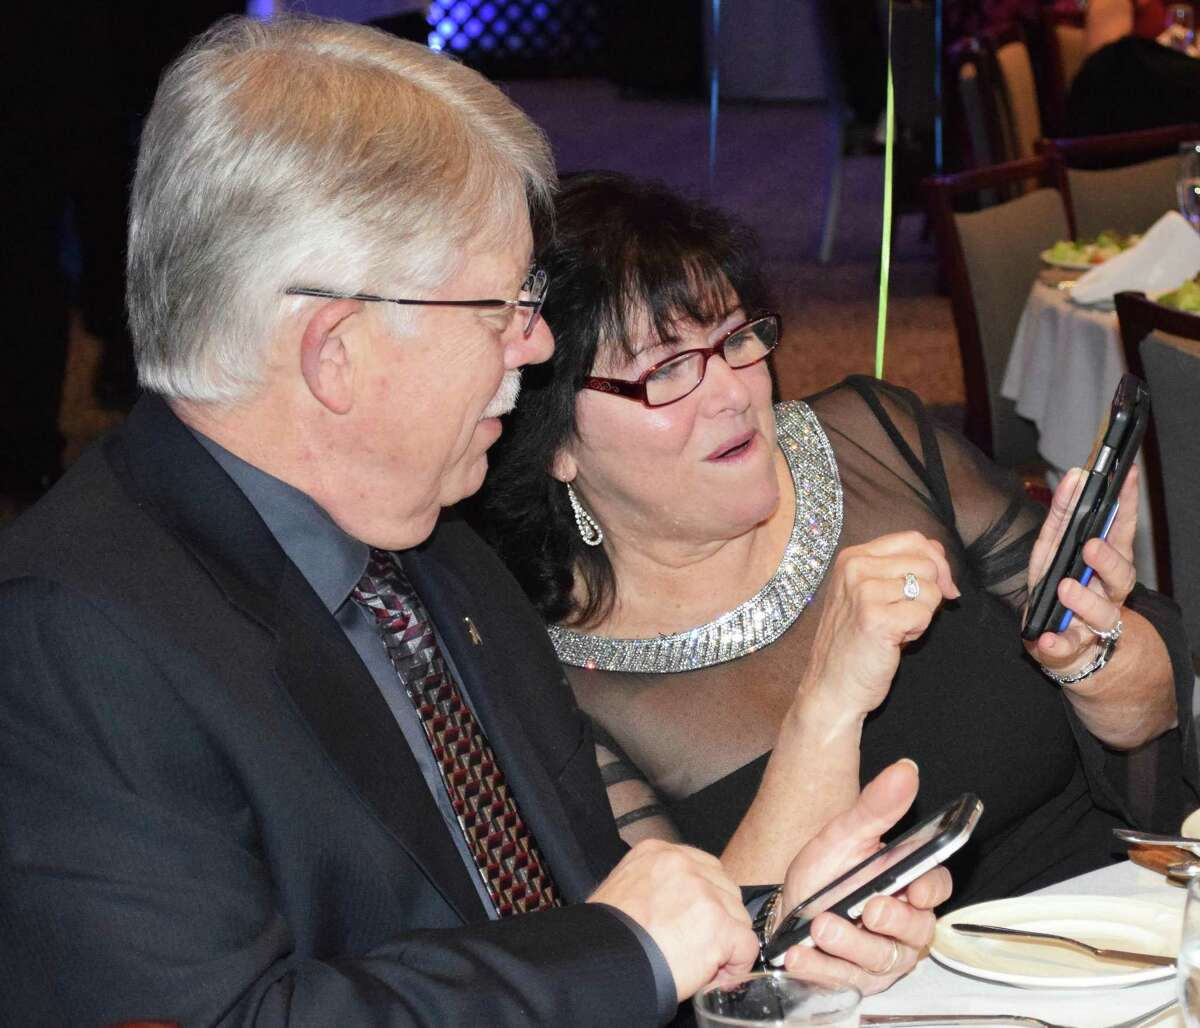 Kathy Hanson of Oakville, who works at Webster Bank in New Milford, and her husband, Ricky, review photographs they snapped at the Greater New Milford Chamber of Commerce's 20th annual Crystal Winter Gala held Feb. 10, 2018 at the Amber Room Colonnade in Danbury.